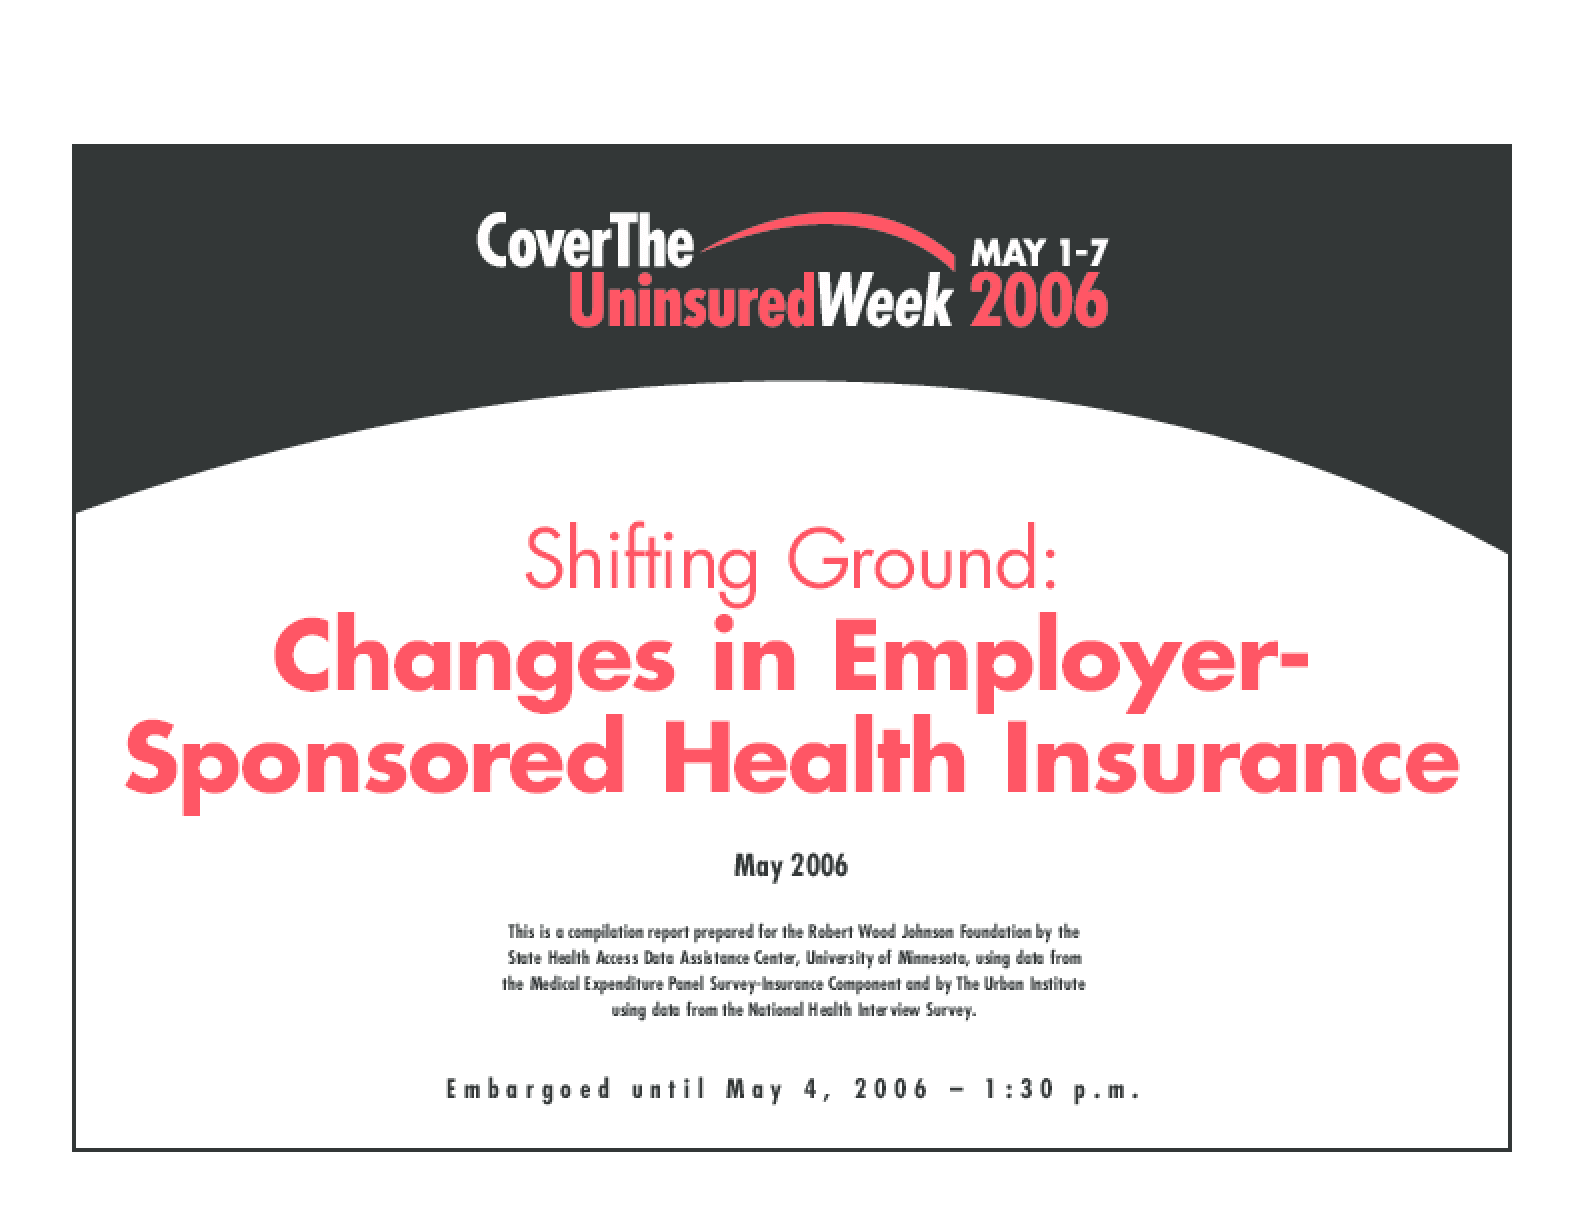 Shifting Ground: Changes in Employer-Sponsored Health Insurance